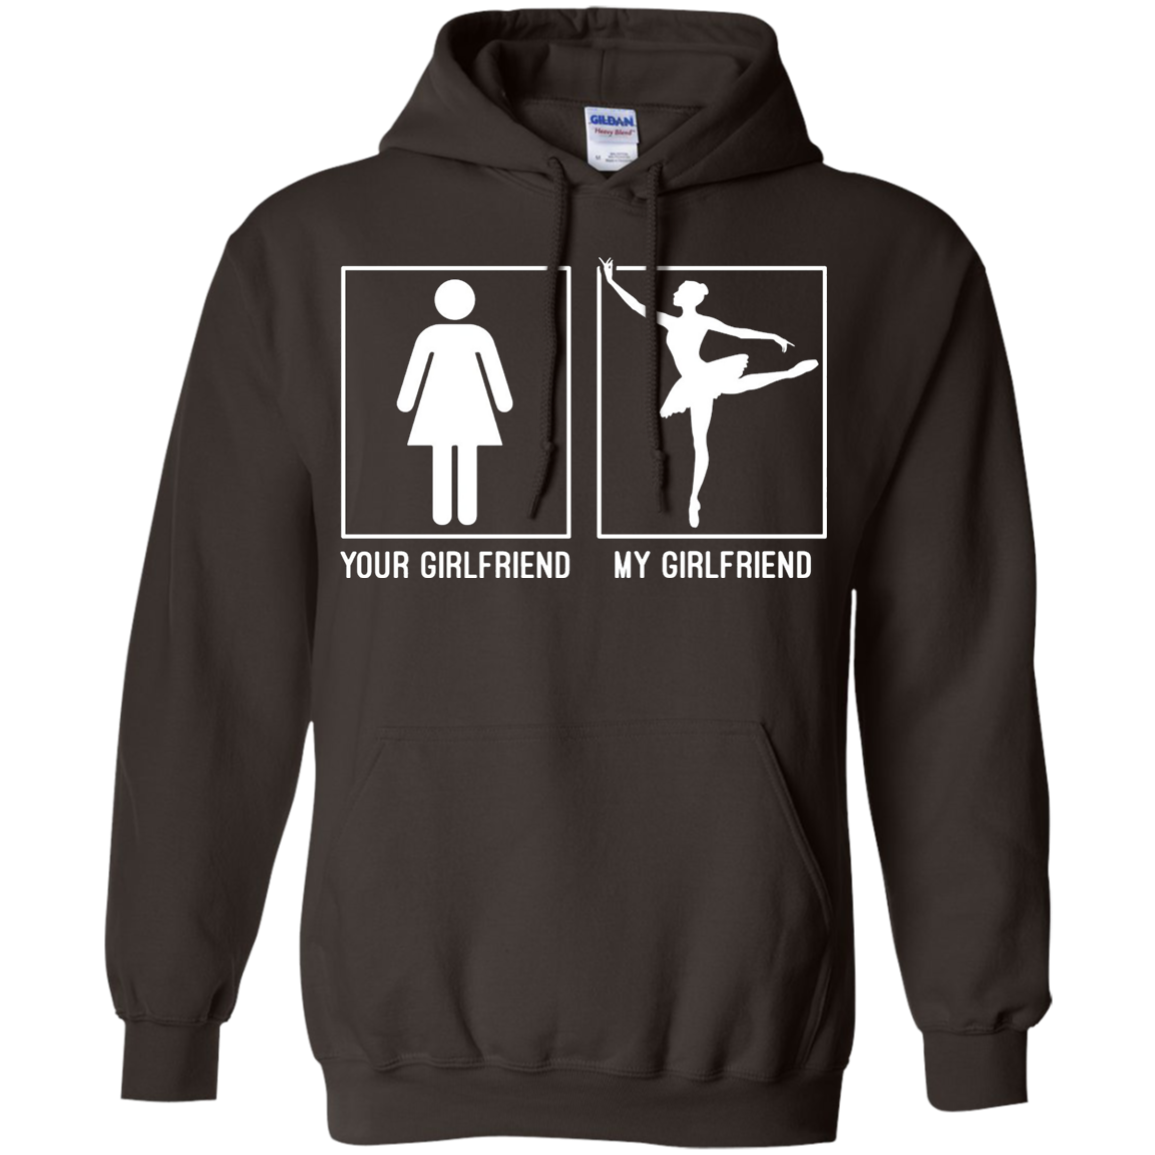 Men's my girlfriend Ballet Dancers Shirt - ballet tee shirt